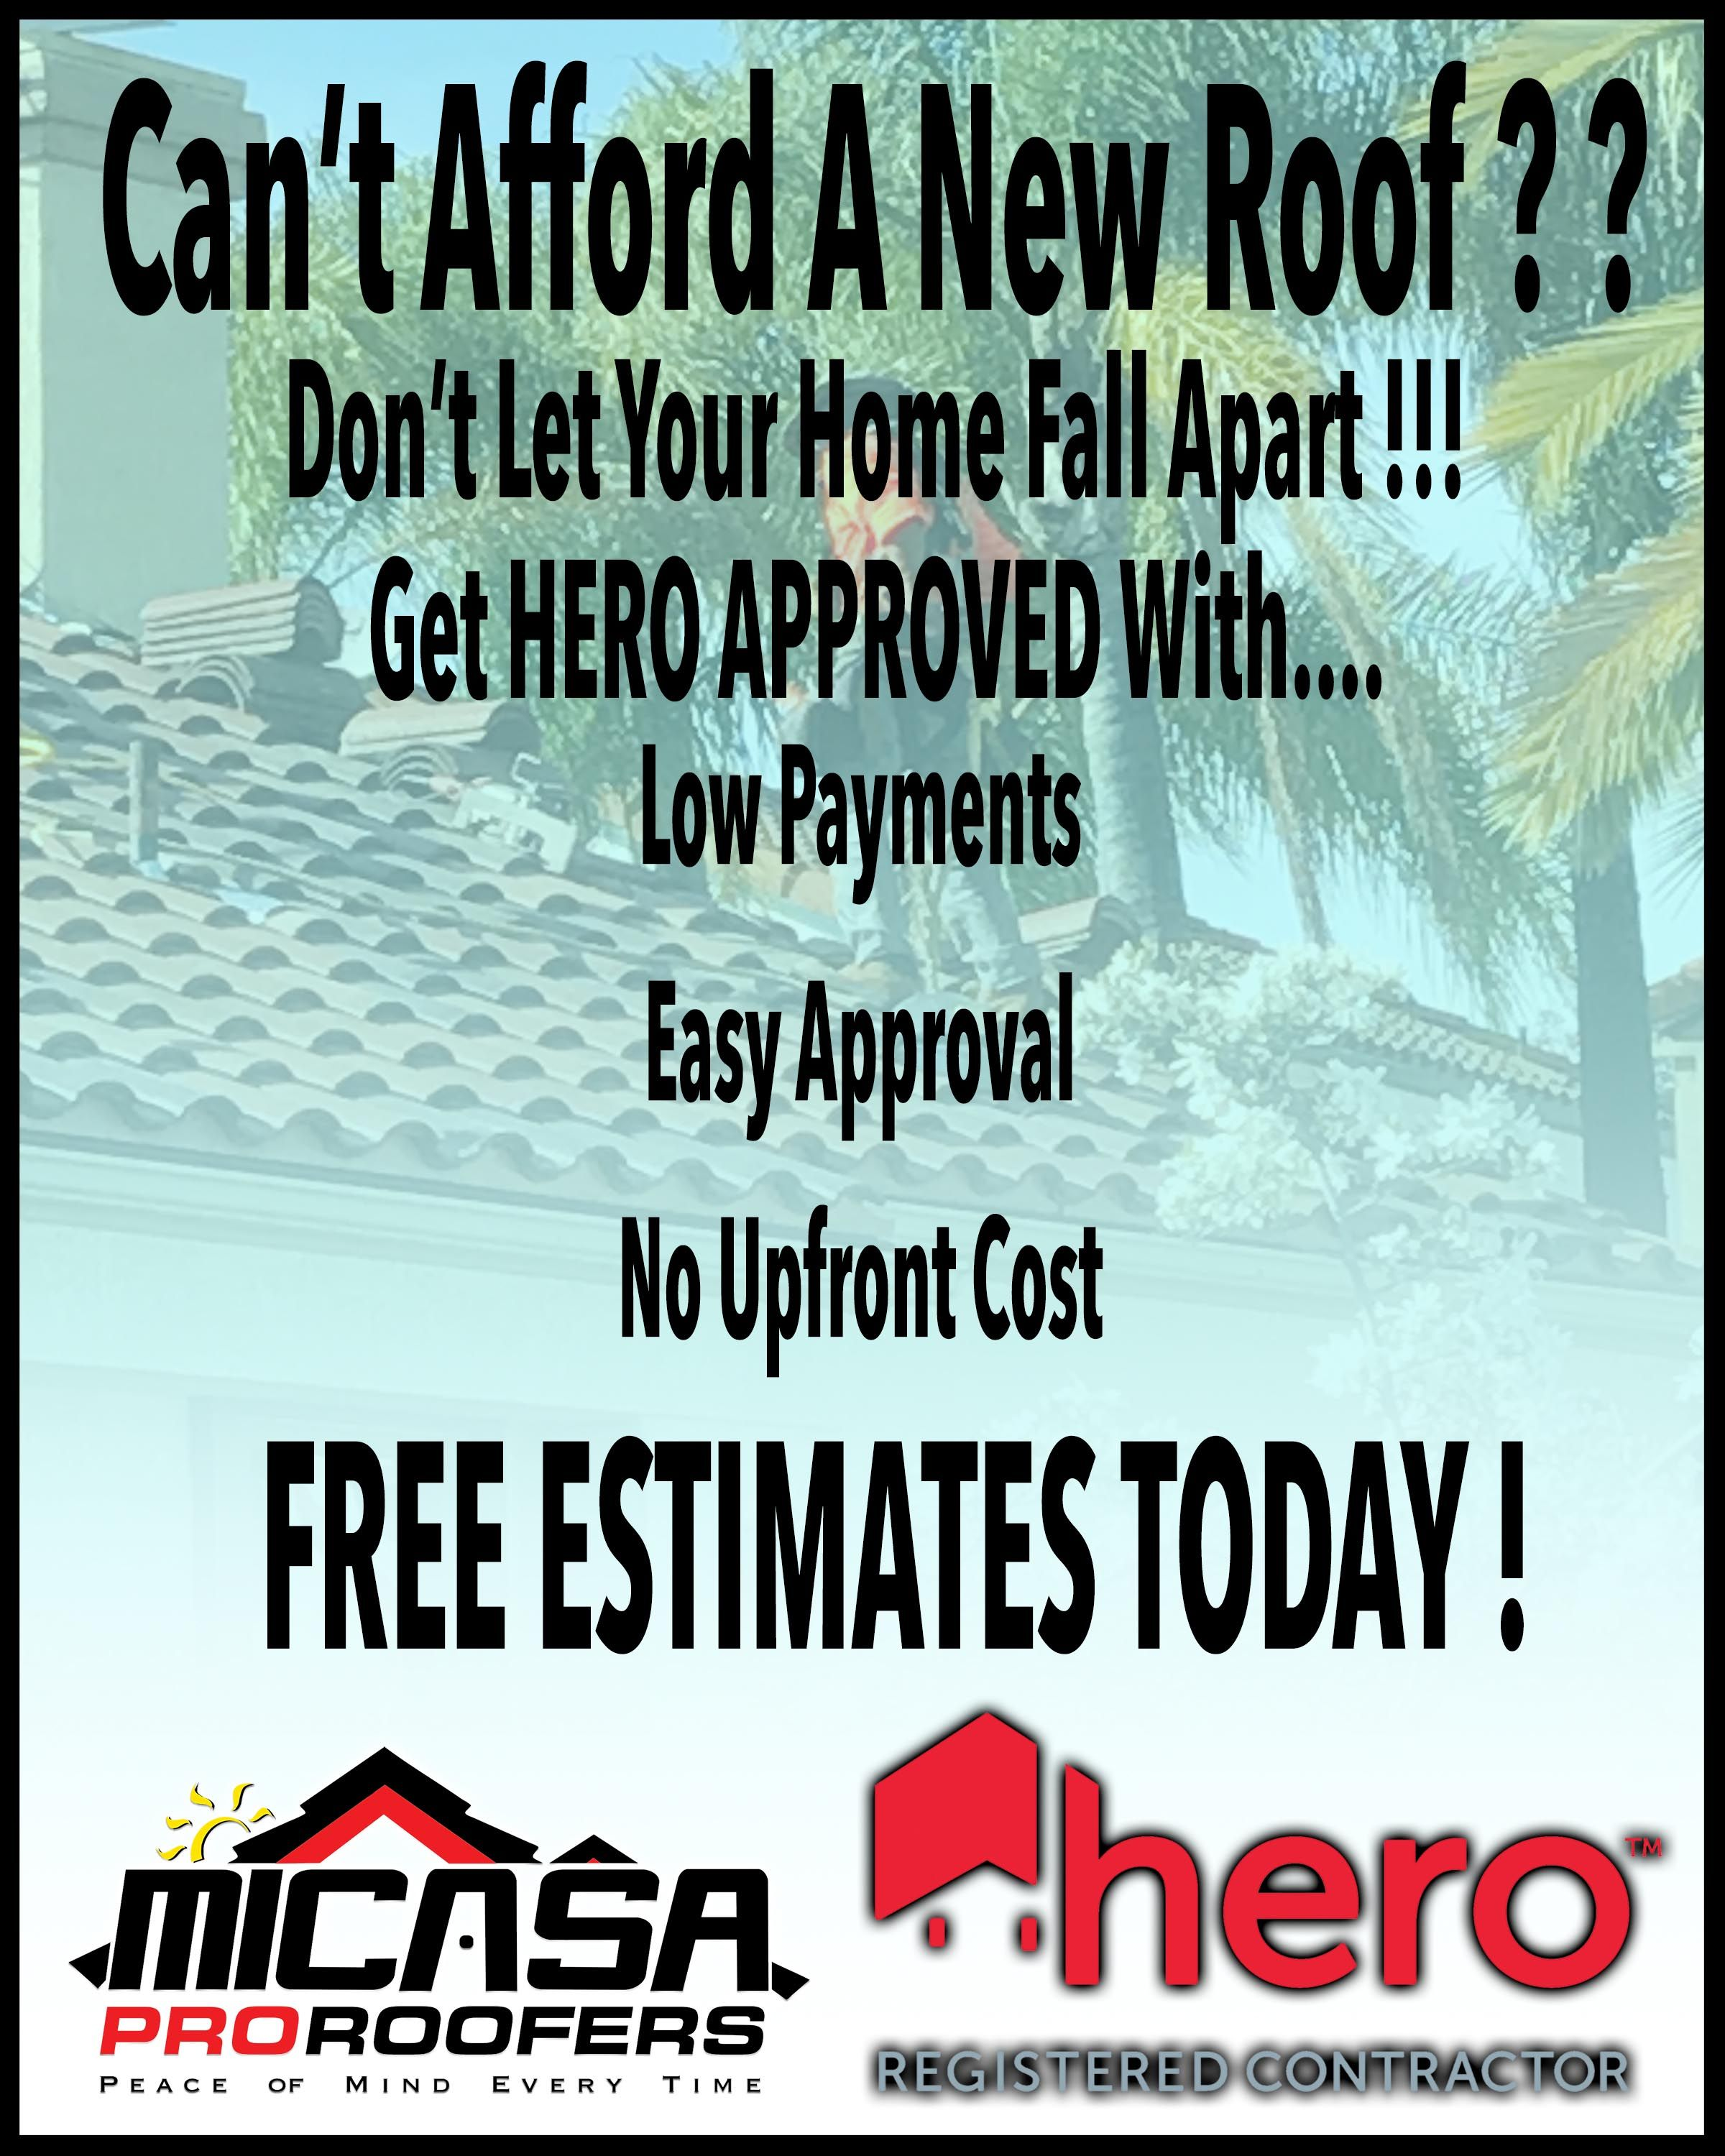 Pin by Micasa Roofing on Micasa Pro Roofers Upland Ads